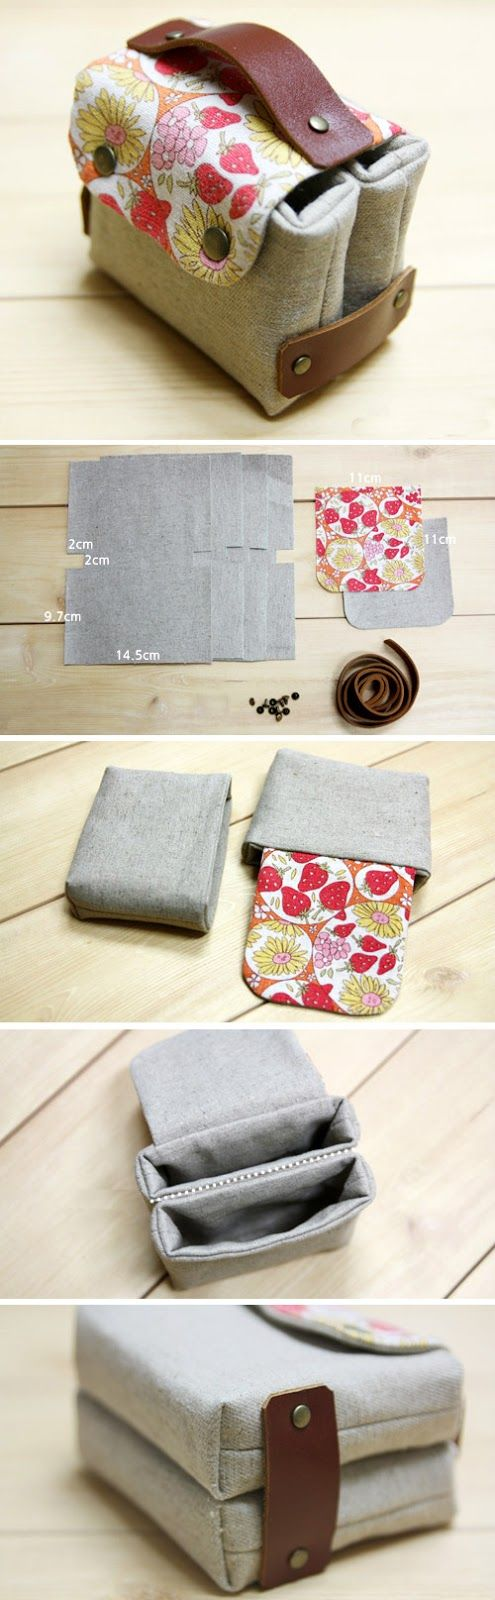 Sewing Fabric Gift Card or Business Card Holder. Tutorial DIY in ...